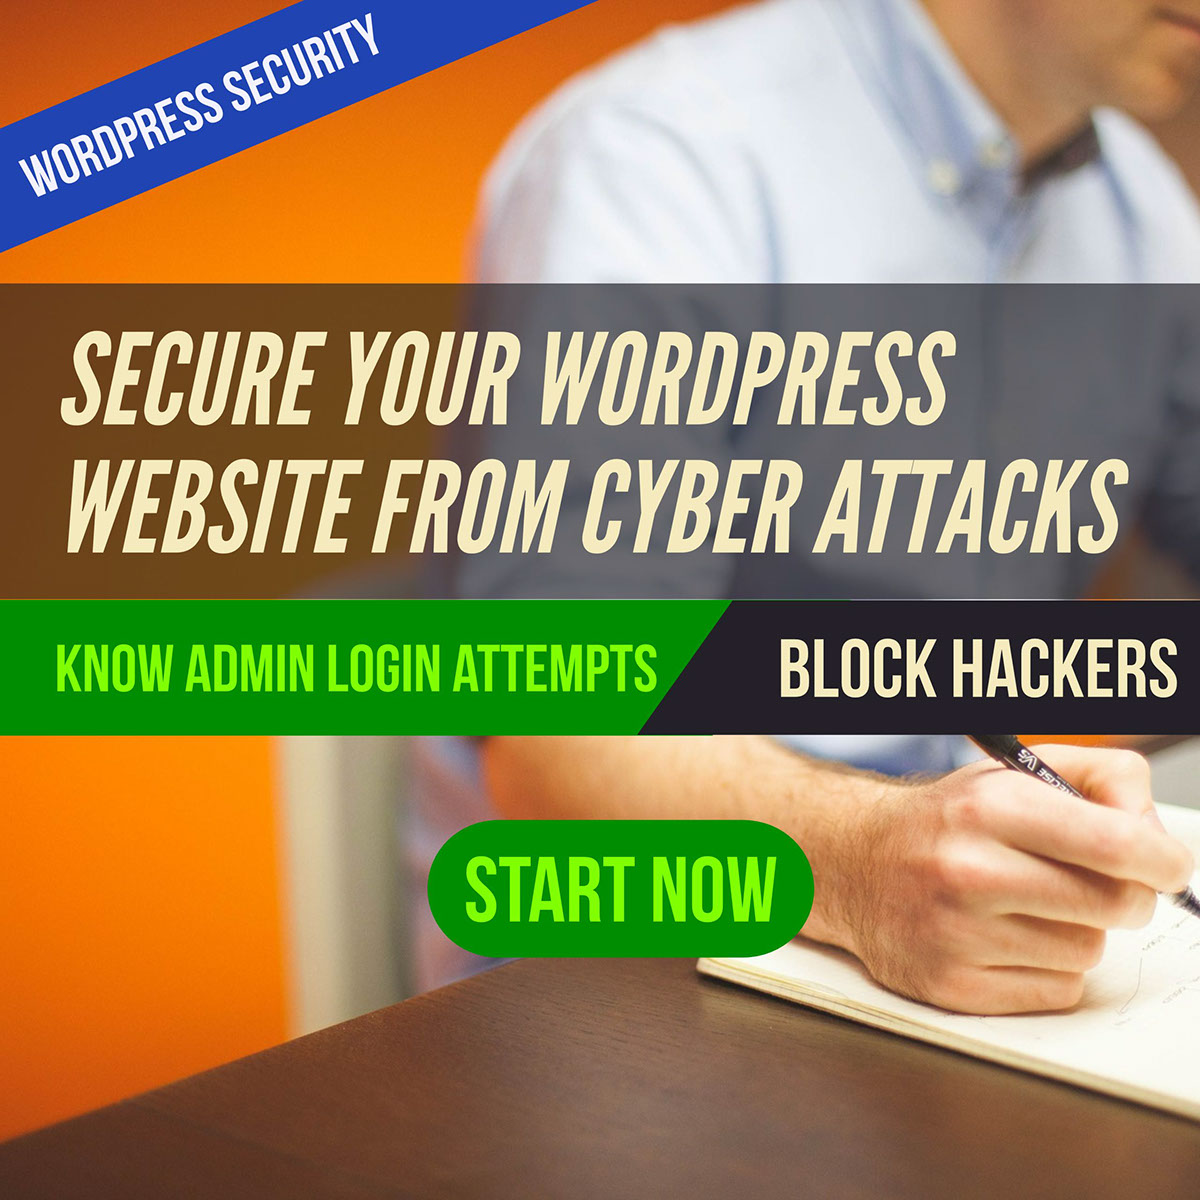 SAFEGUARD YOUR WORDPRESS WEBSITE BY INSTALLING SECURITY FEATURE PLUGIN